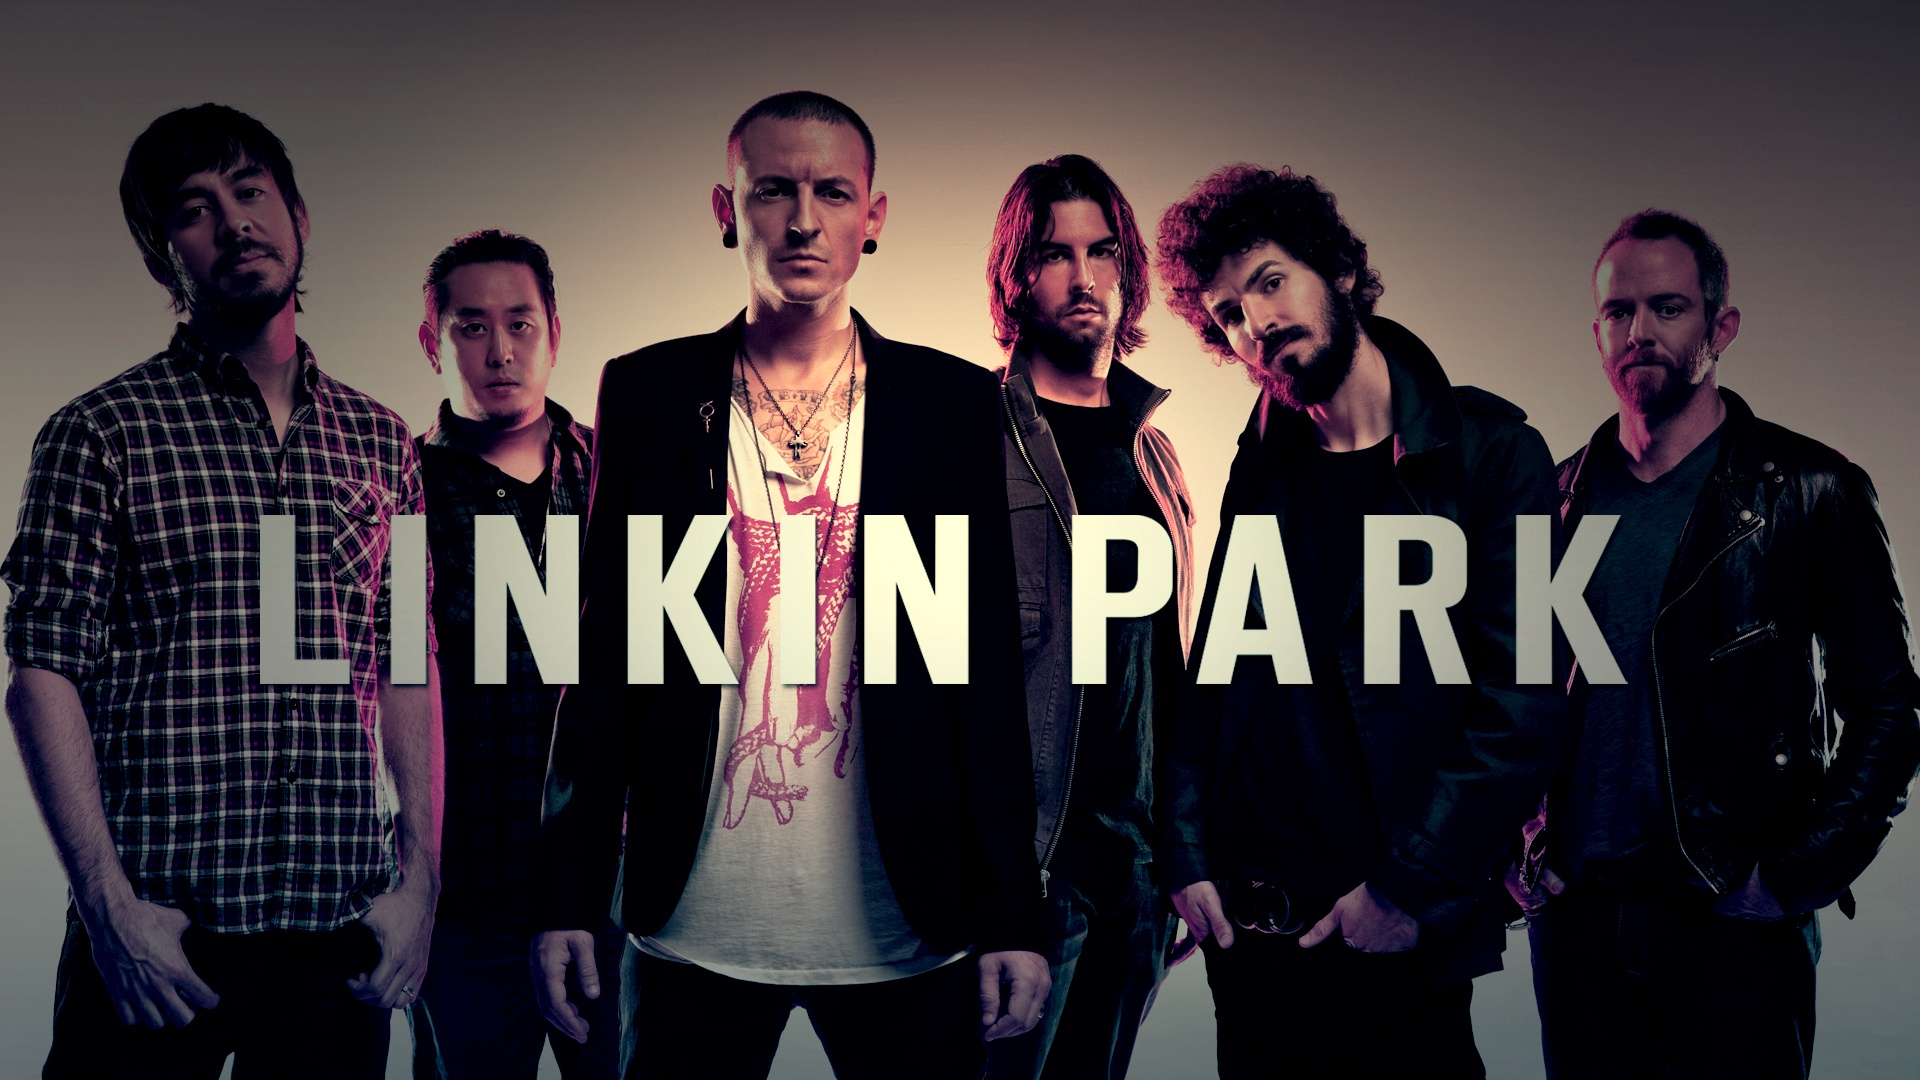 Linkin Park Releases Game to Promote Album and Environmentalism